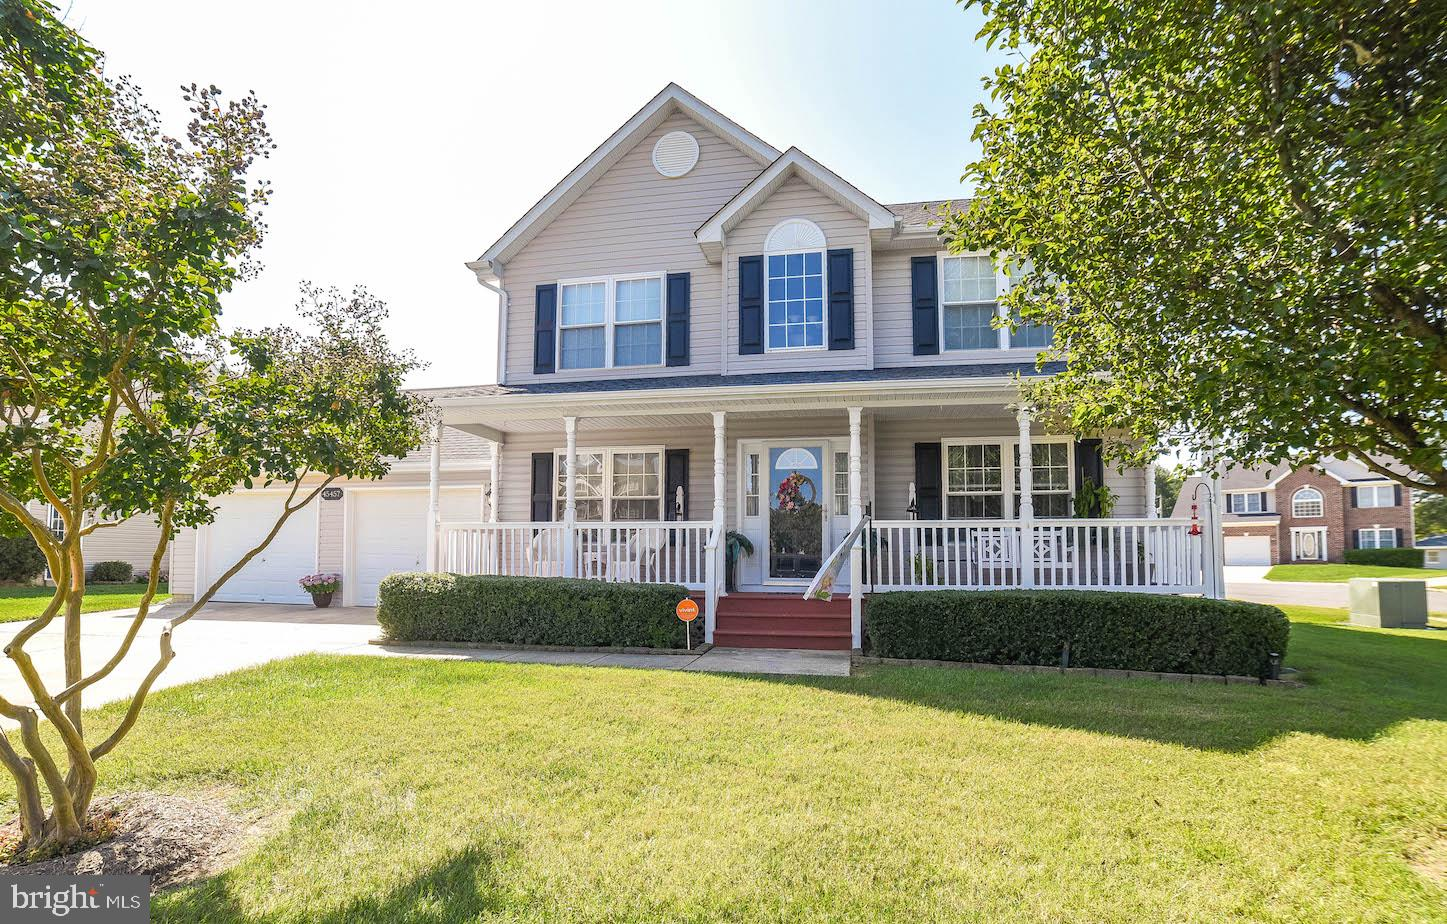 Extremely well maintained updated home. Wonderful back deck plus patio. Cozy front porch. Formal liv